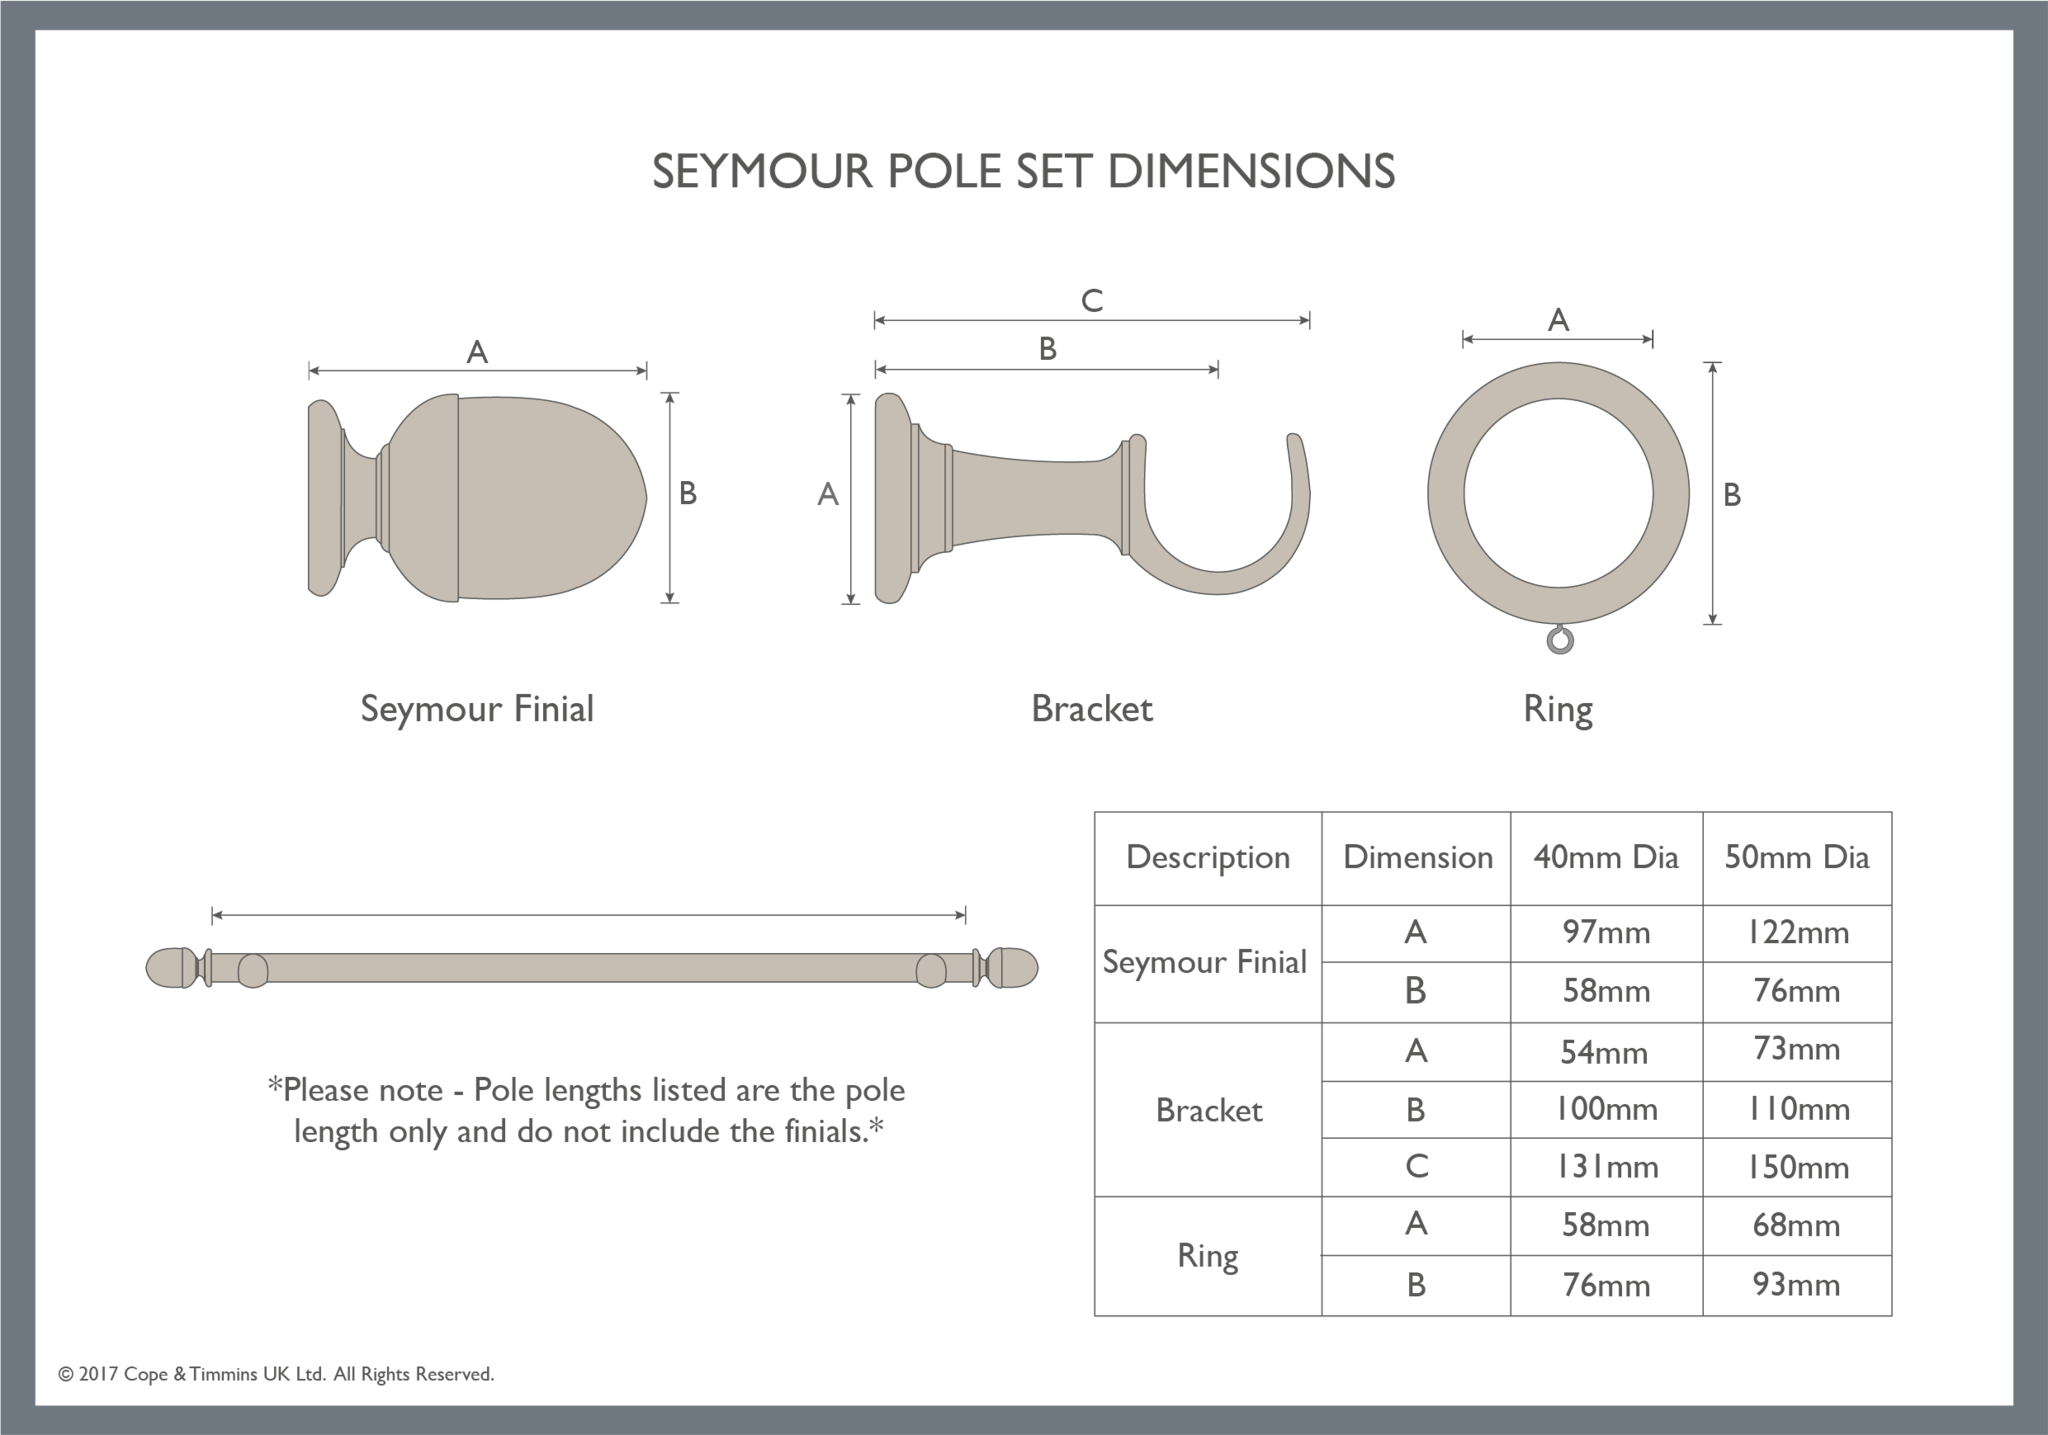 Seymour curtain pole set component dimensions